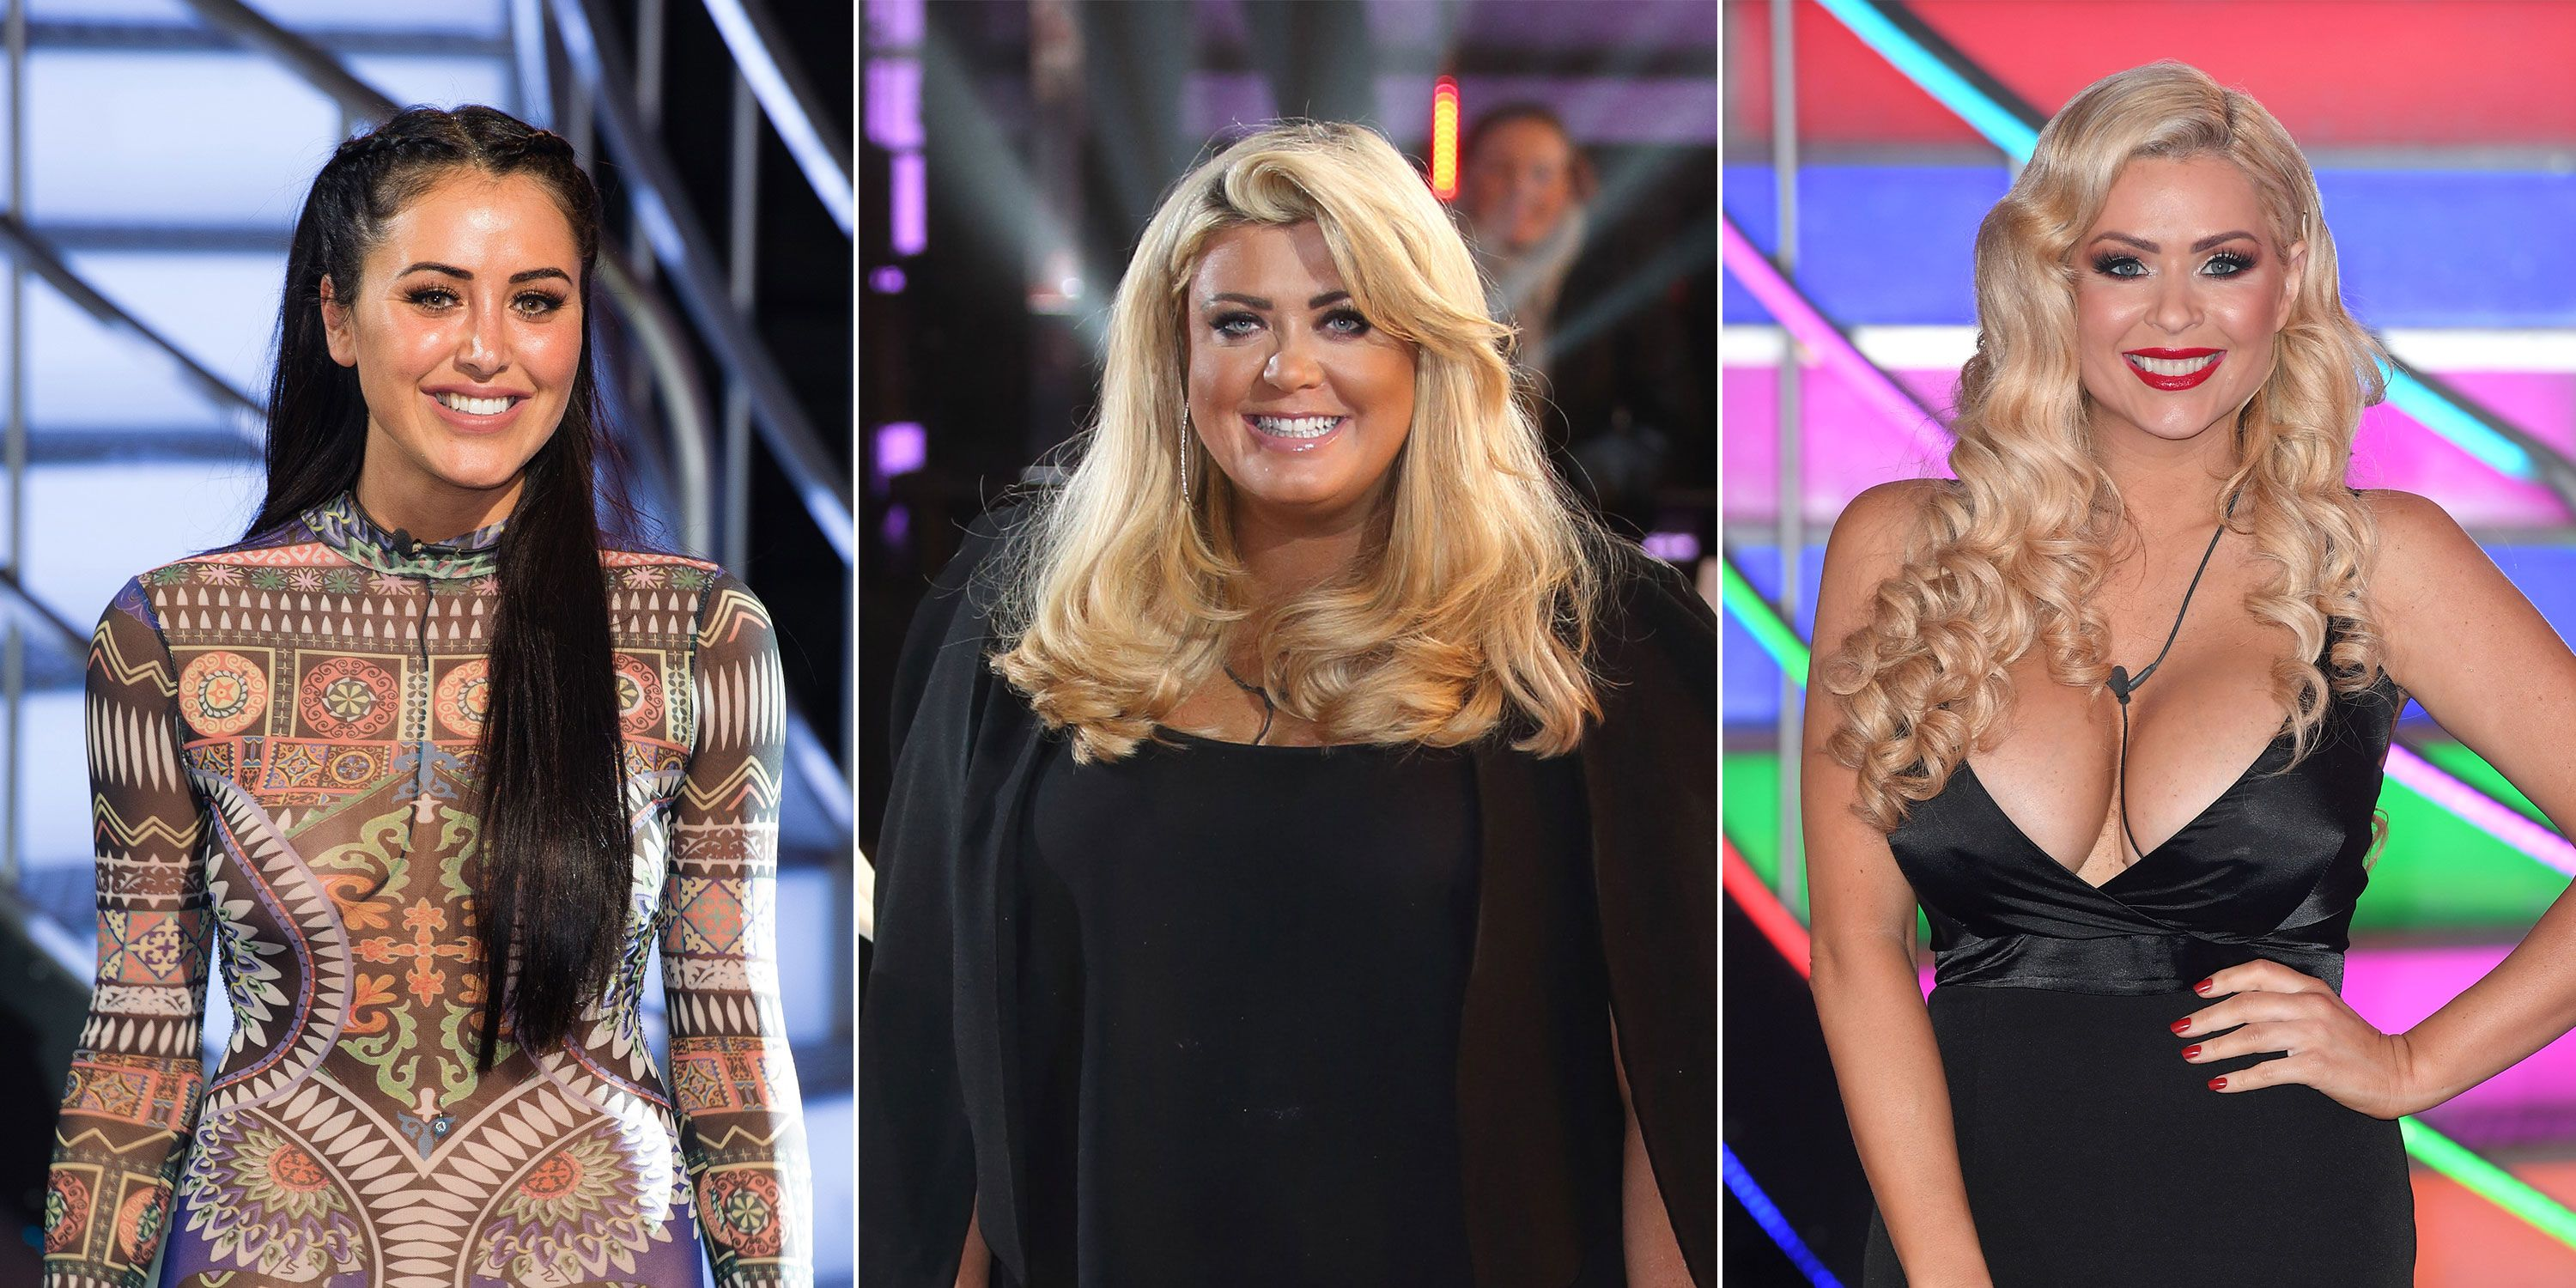 Celebrities are moving into the Big Brother house this week